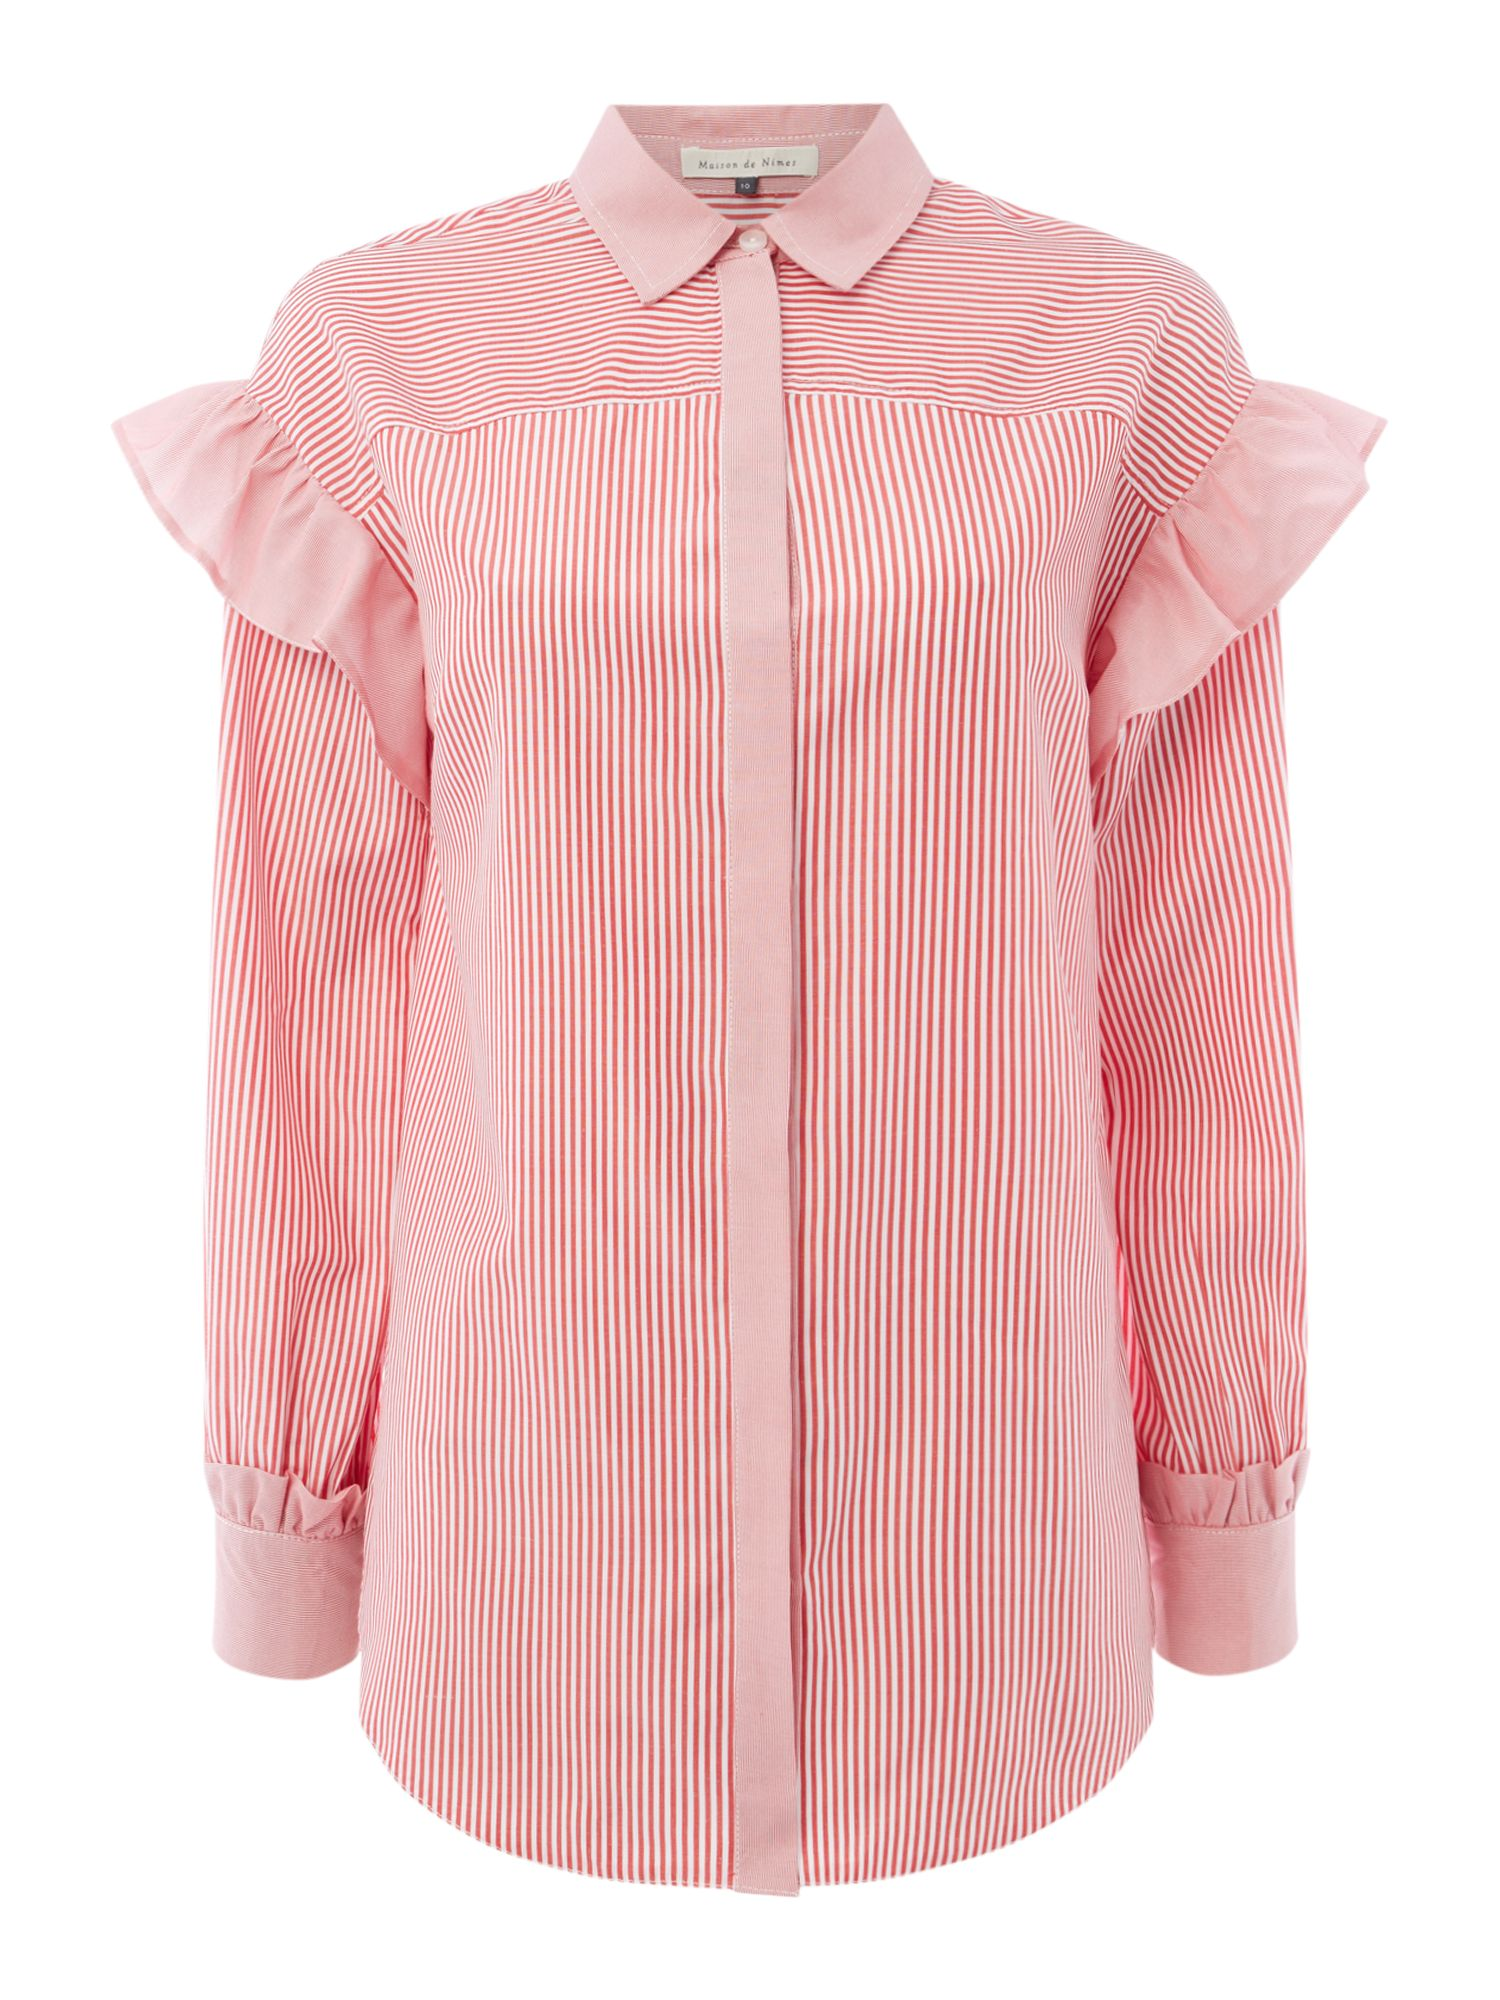 Maison De Nimes Stripe Mix Frill Sleeve Shirt, Red